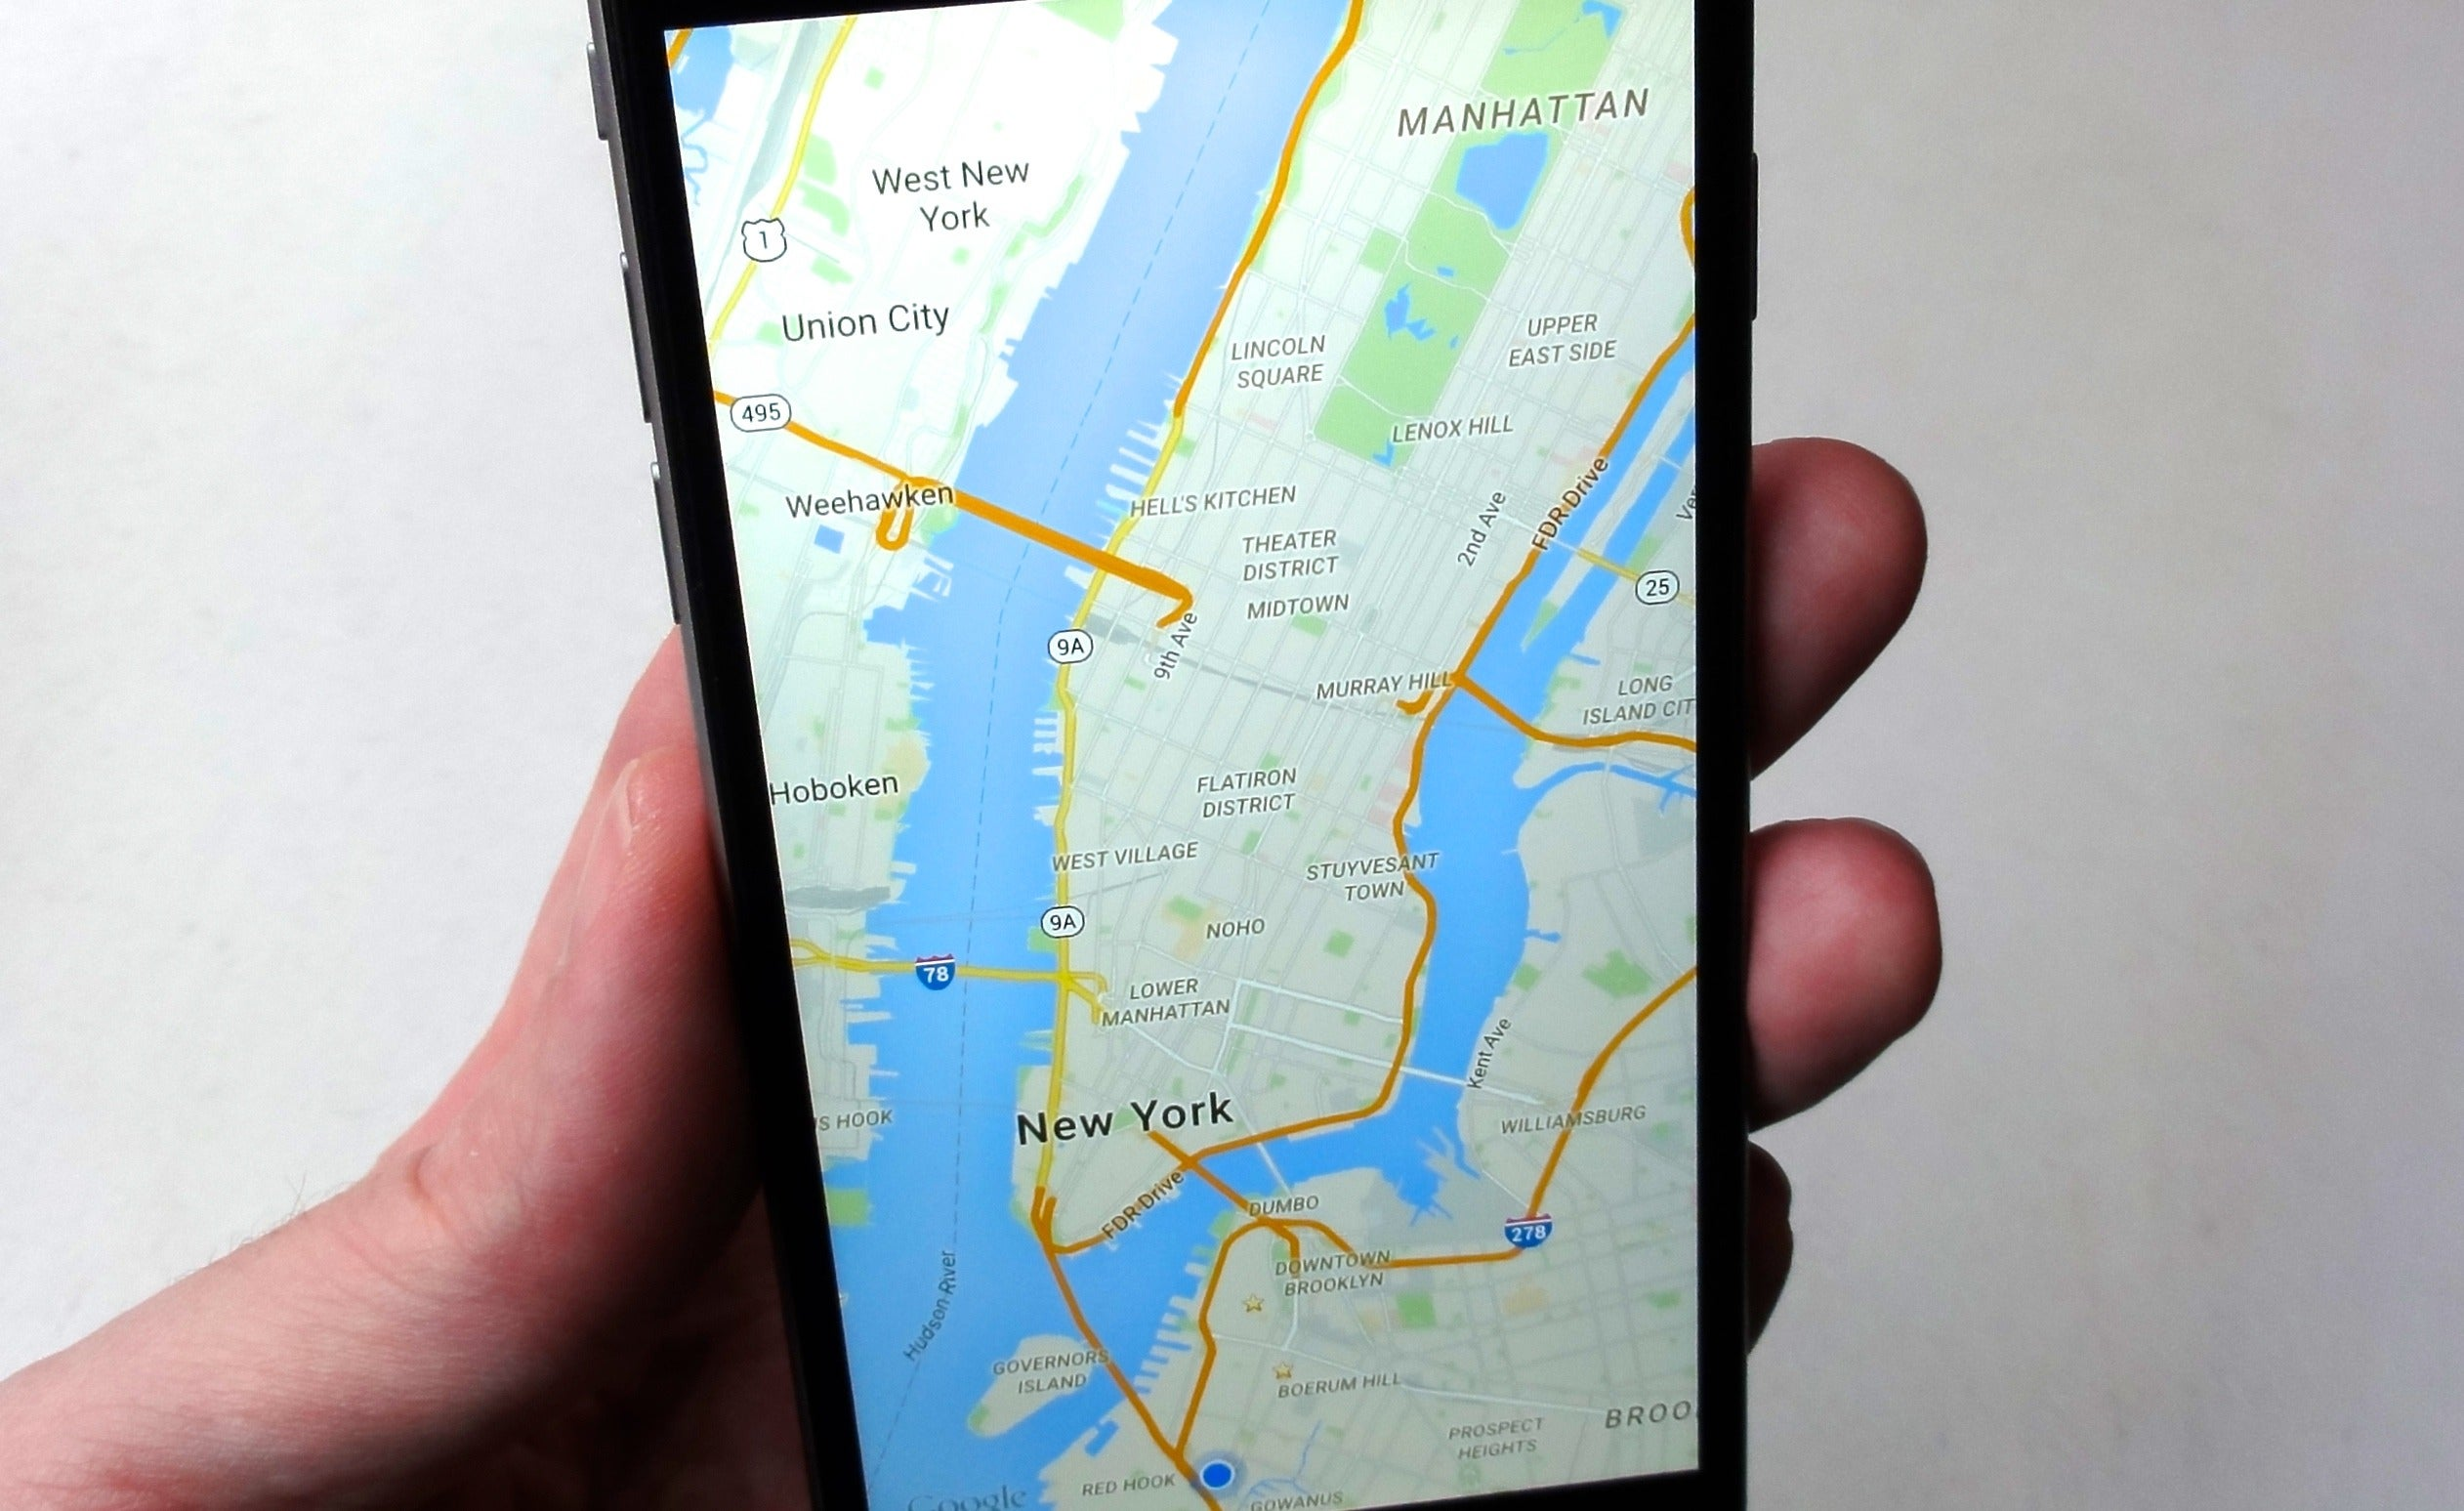 Offline Map Of New York For Android.8 Great Google Maps Tips For Android And Ios Pcworld